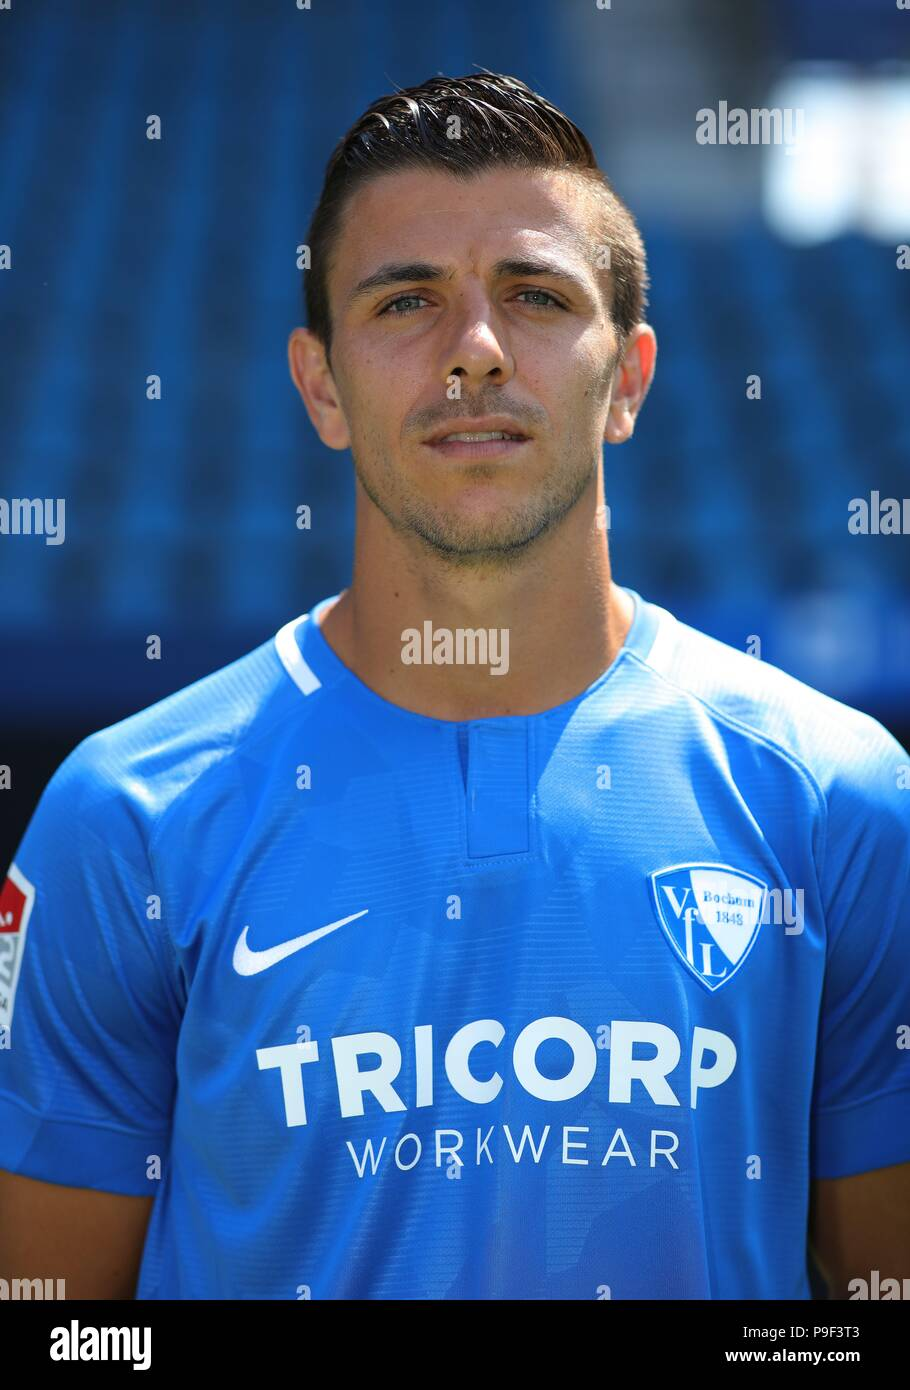 firo: 17.07.2018, football, 2.Bundesliga, season 2018/2019, VfL Bochum, photo shoot, portraits, portrait, Anthony LOSILLA, | usage worldwide - Stock Image